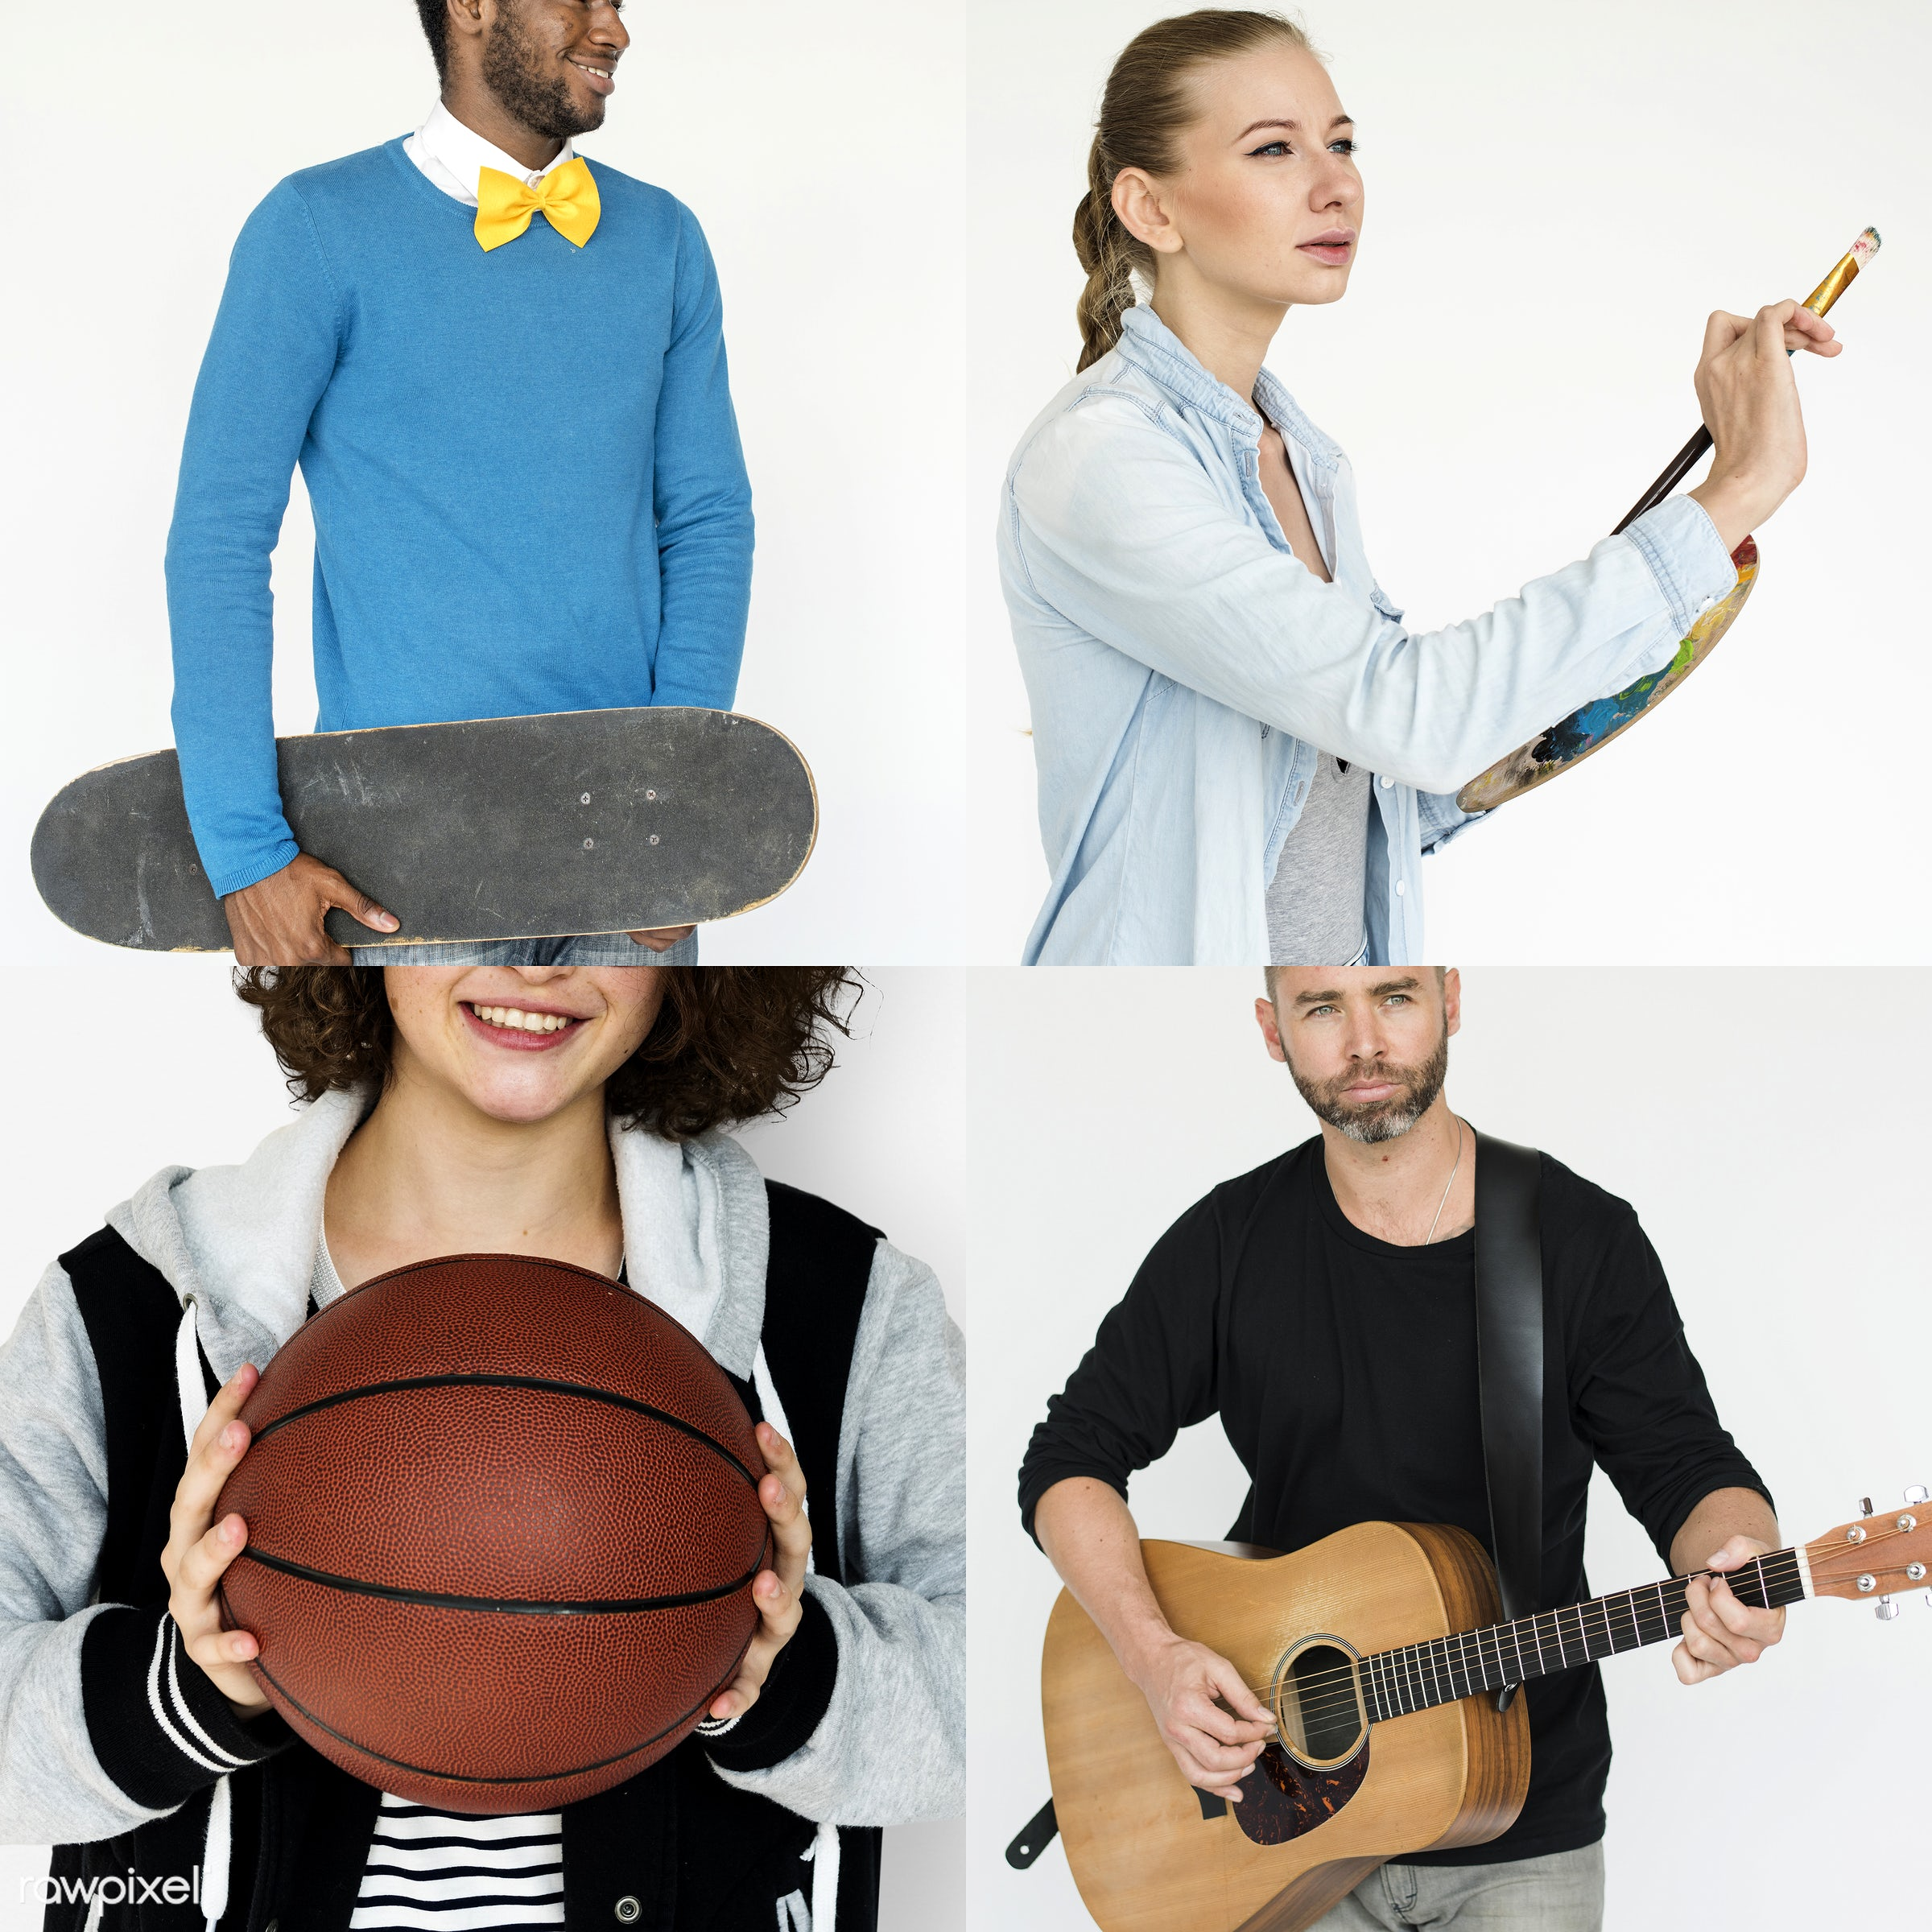 basketball, studio, person, diverse, entertain, recreation, people, young adult, woman, lifestyle, cheerful, isolated, hobby...